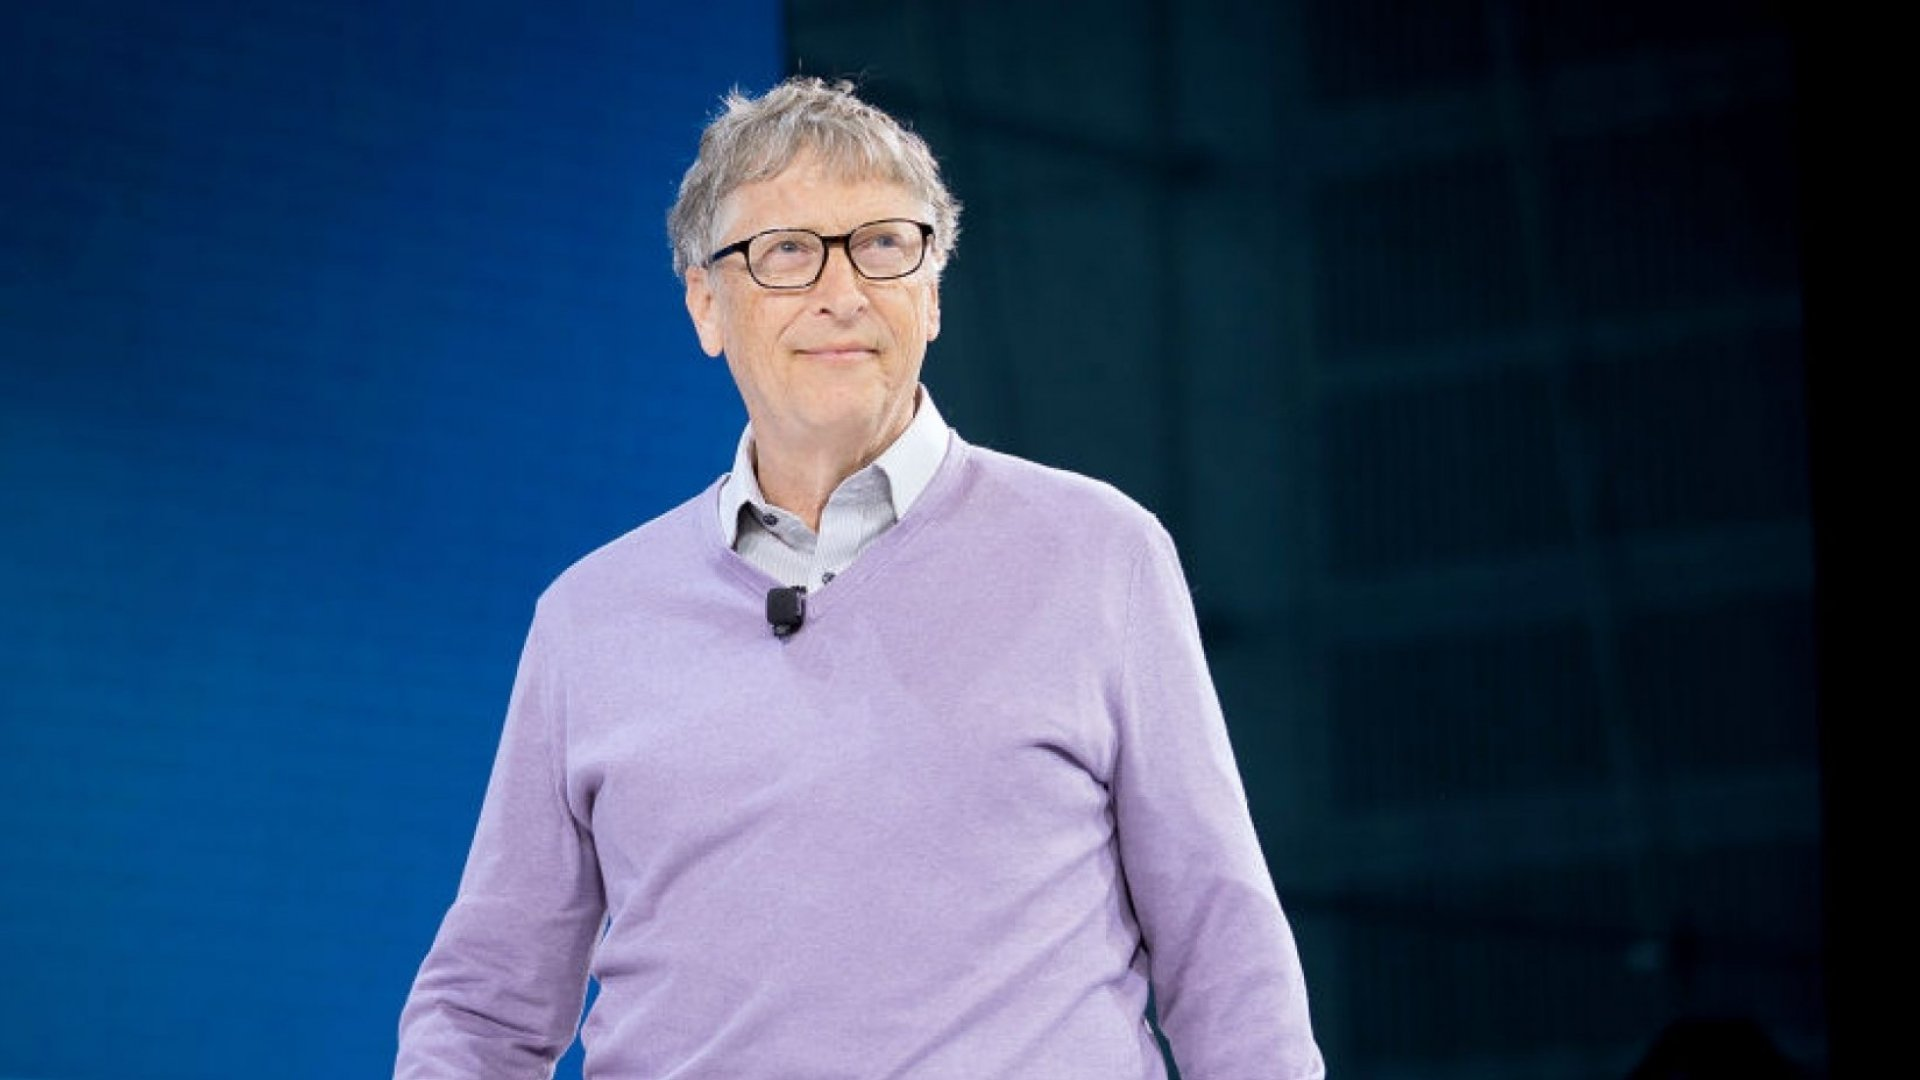 Inc. - Bill Gates Just Explained How He Used 'Negative Praise' to Lead Teams at Microsoft, but Only the Best Leaders Can Copy It